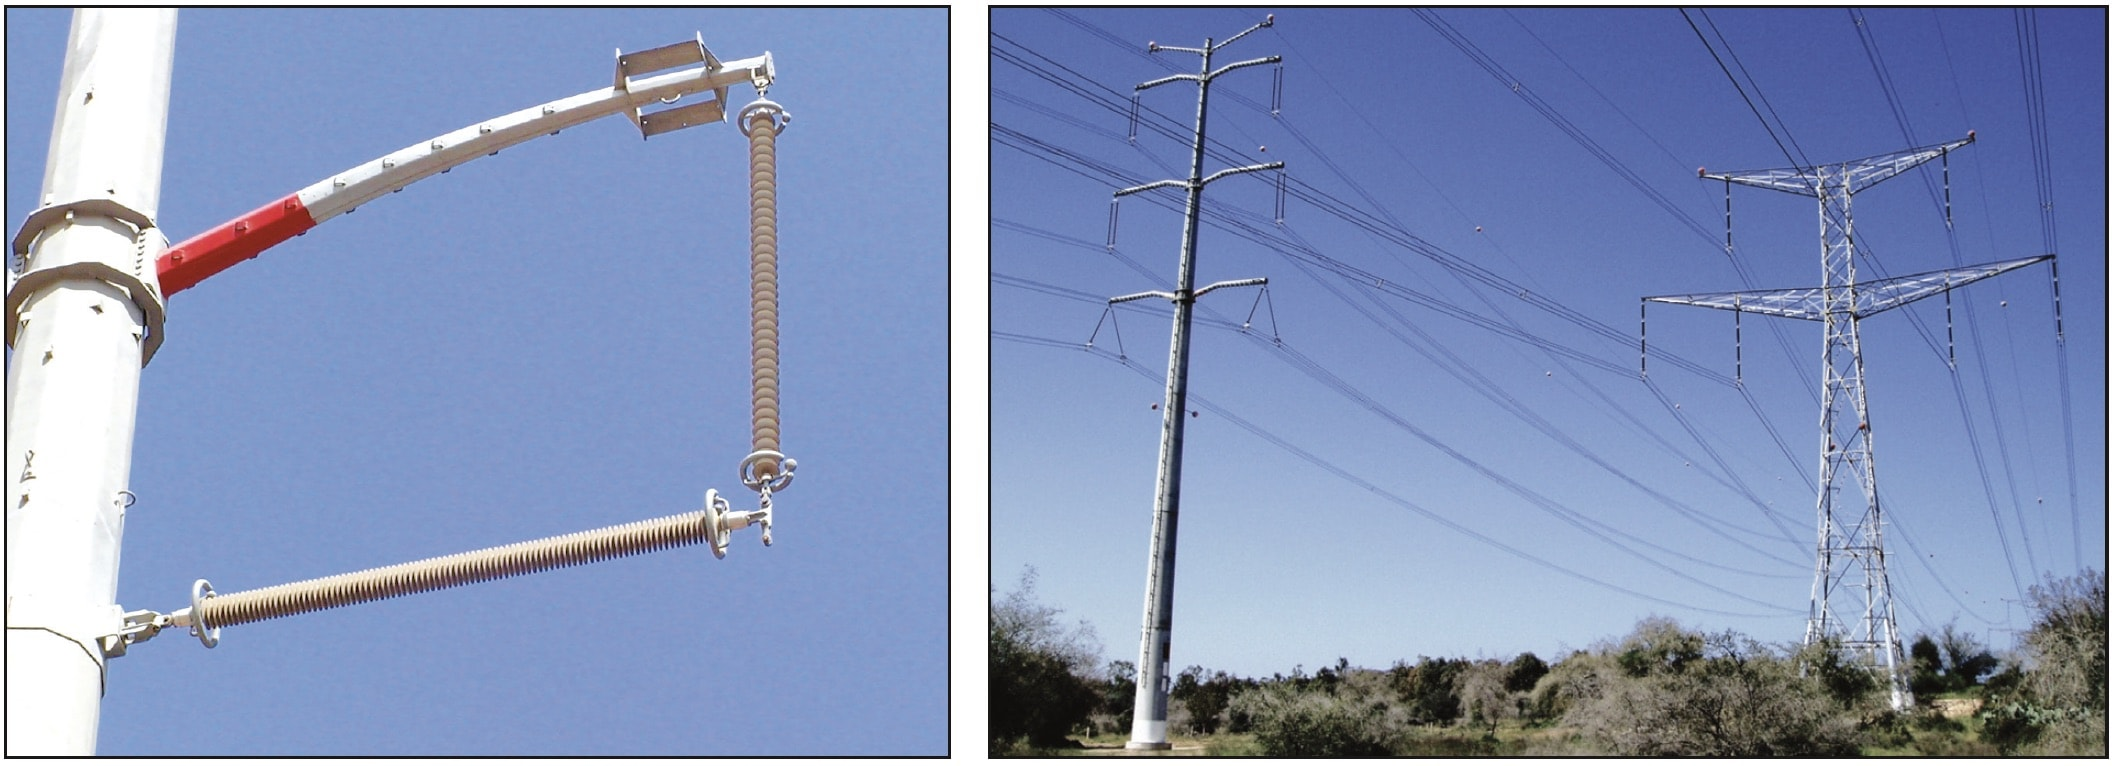 Tubular tension tower without cross-arms. Compact line next to traditional design of line. compact line Compact HV Lines in Israel Tubular tension tower without cross arms